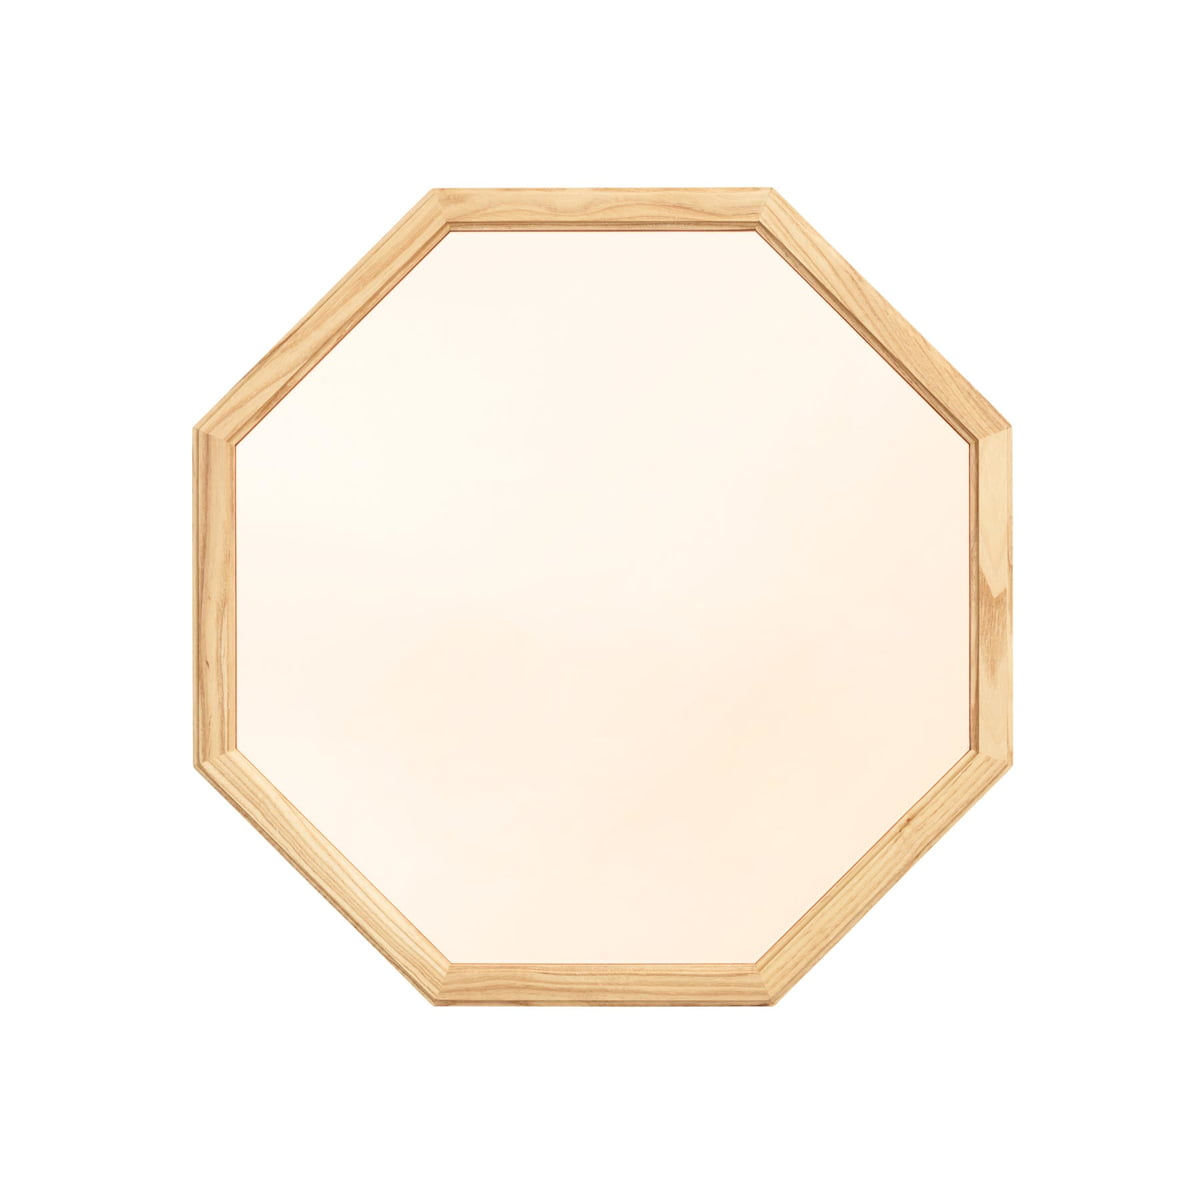 lust mirror 50 x 50 cm by normann copenhagen